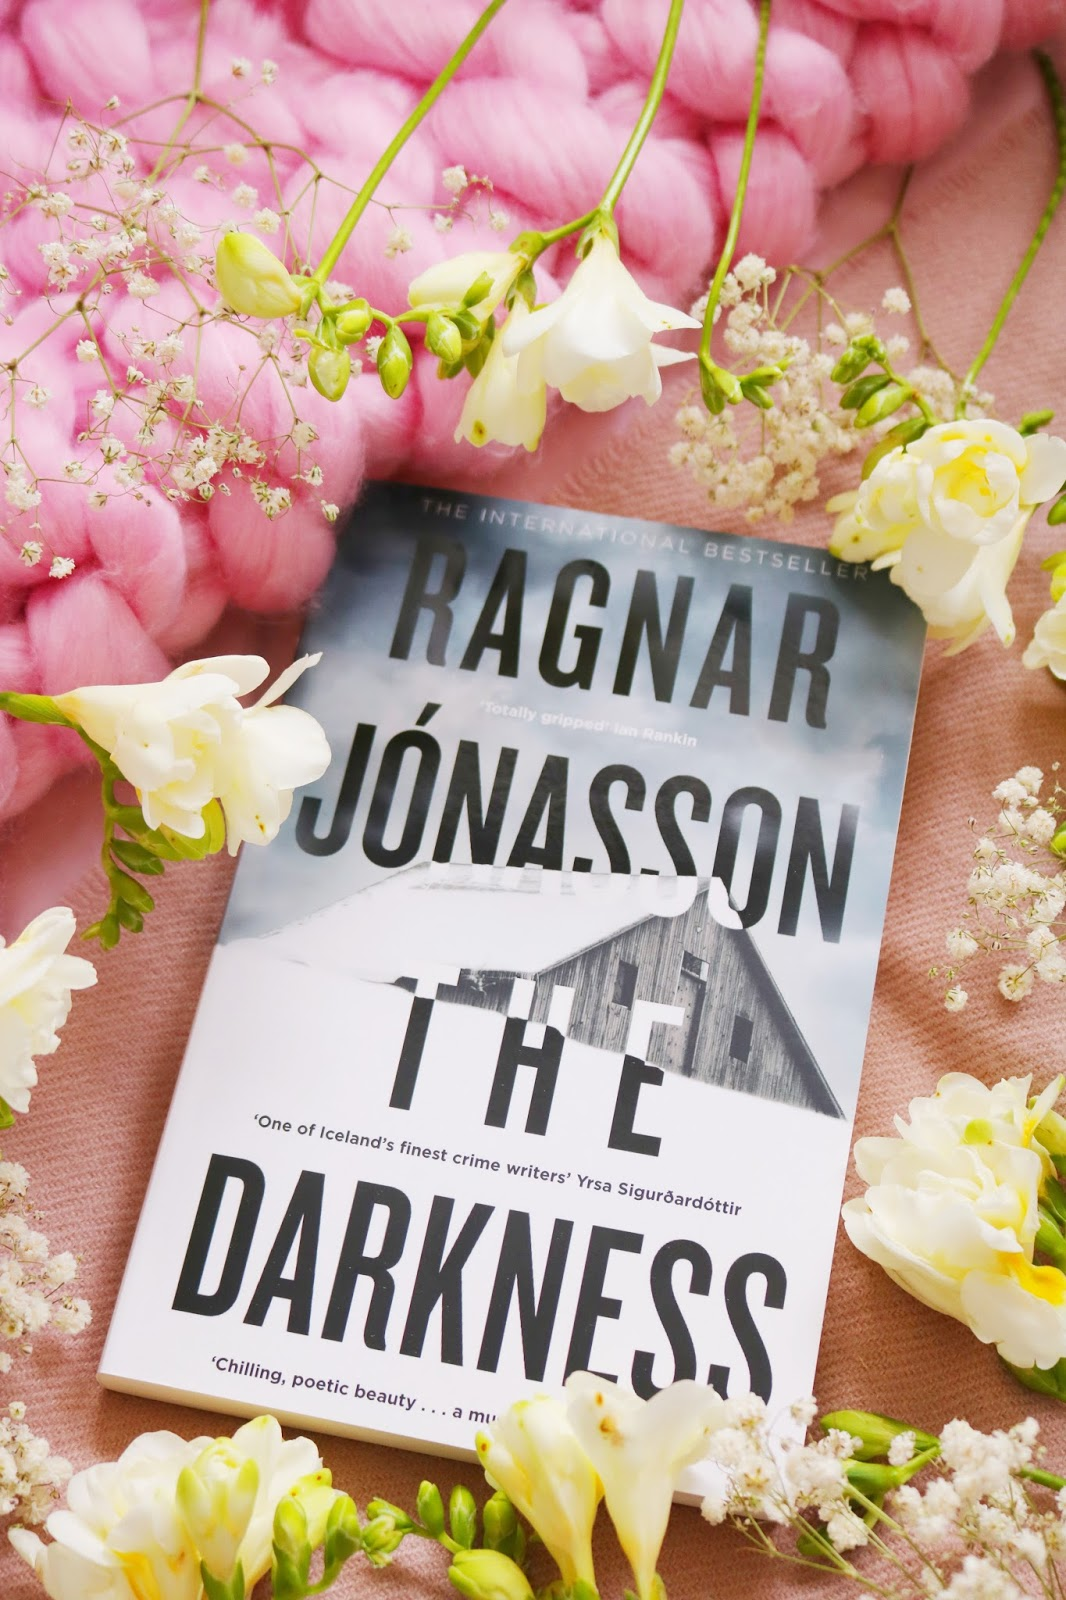 Blog Tour: The Darkness by Ragnar Jonasson